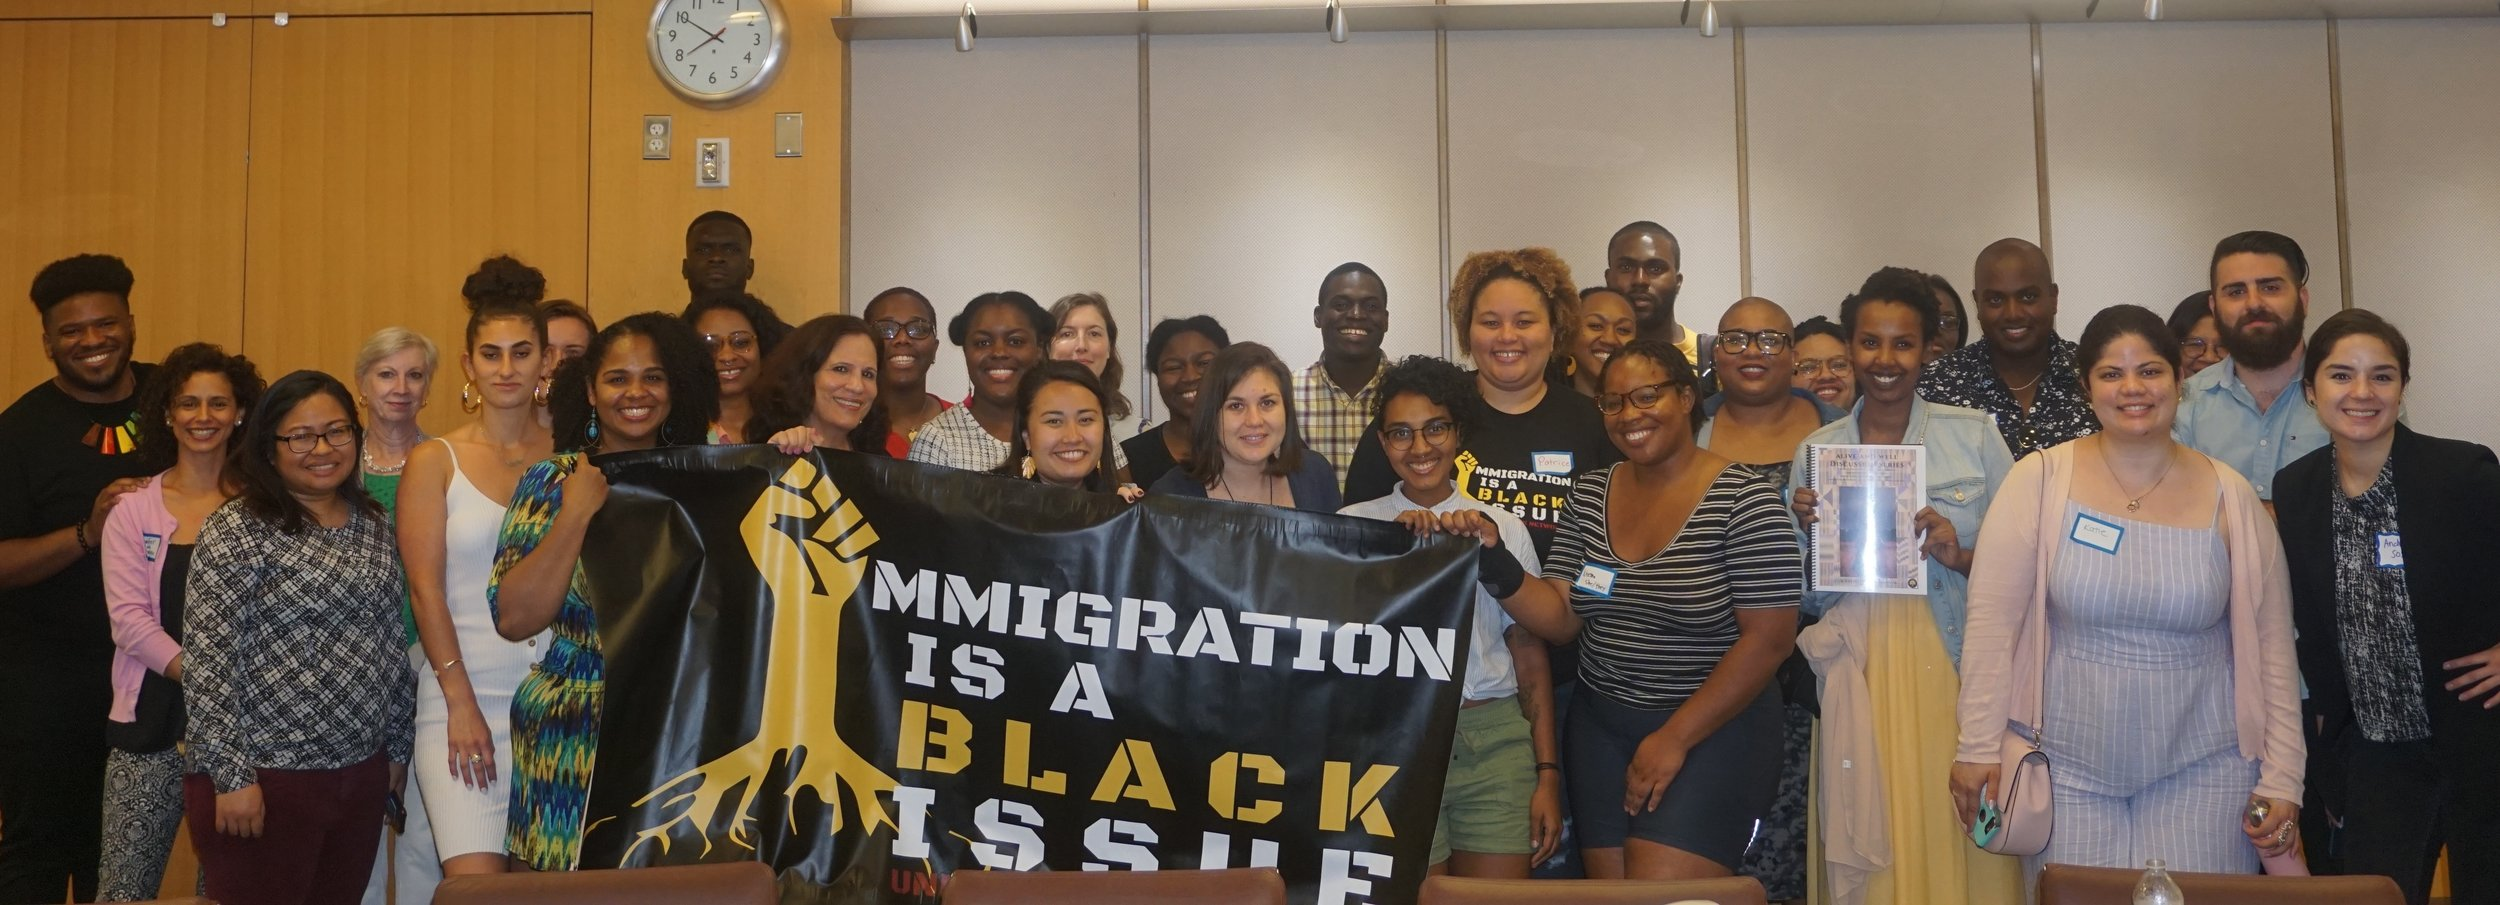 """Pictured above is a group photo of attendees from the Alive and Well Discussion Series launch, which took place in Washington DC on May 30, 2019. The people in the front row are holding a banner which says """"Immigration is a Black issue."""""""